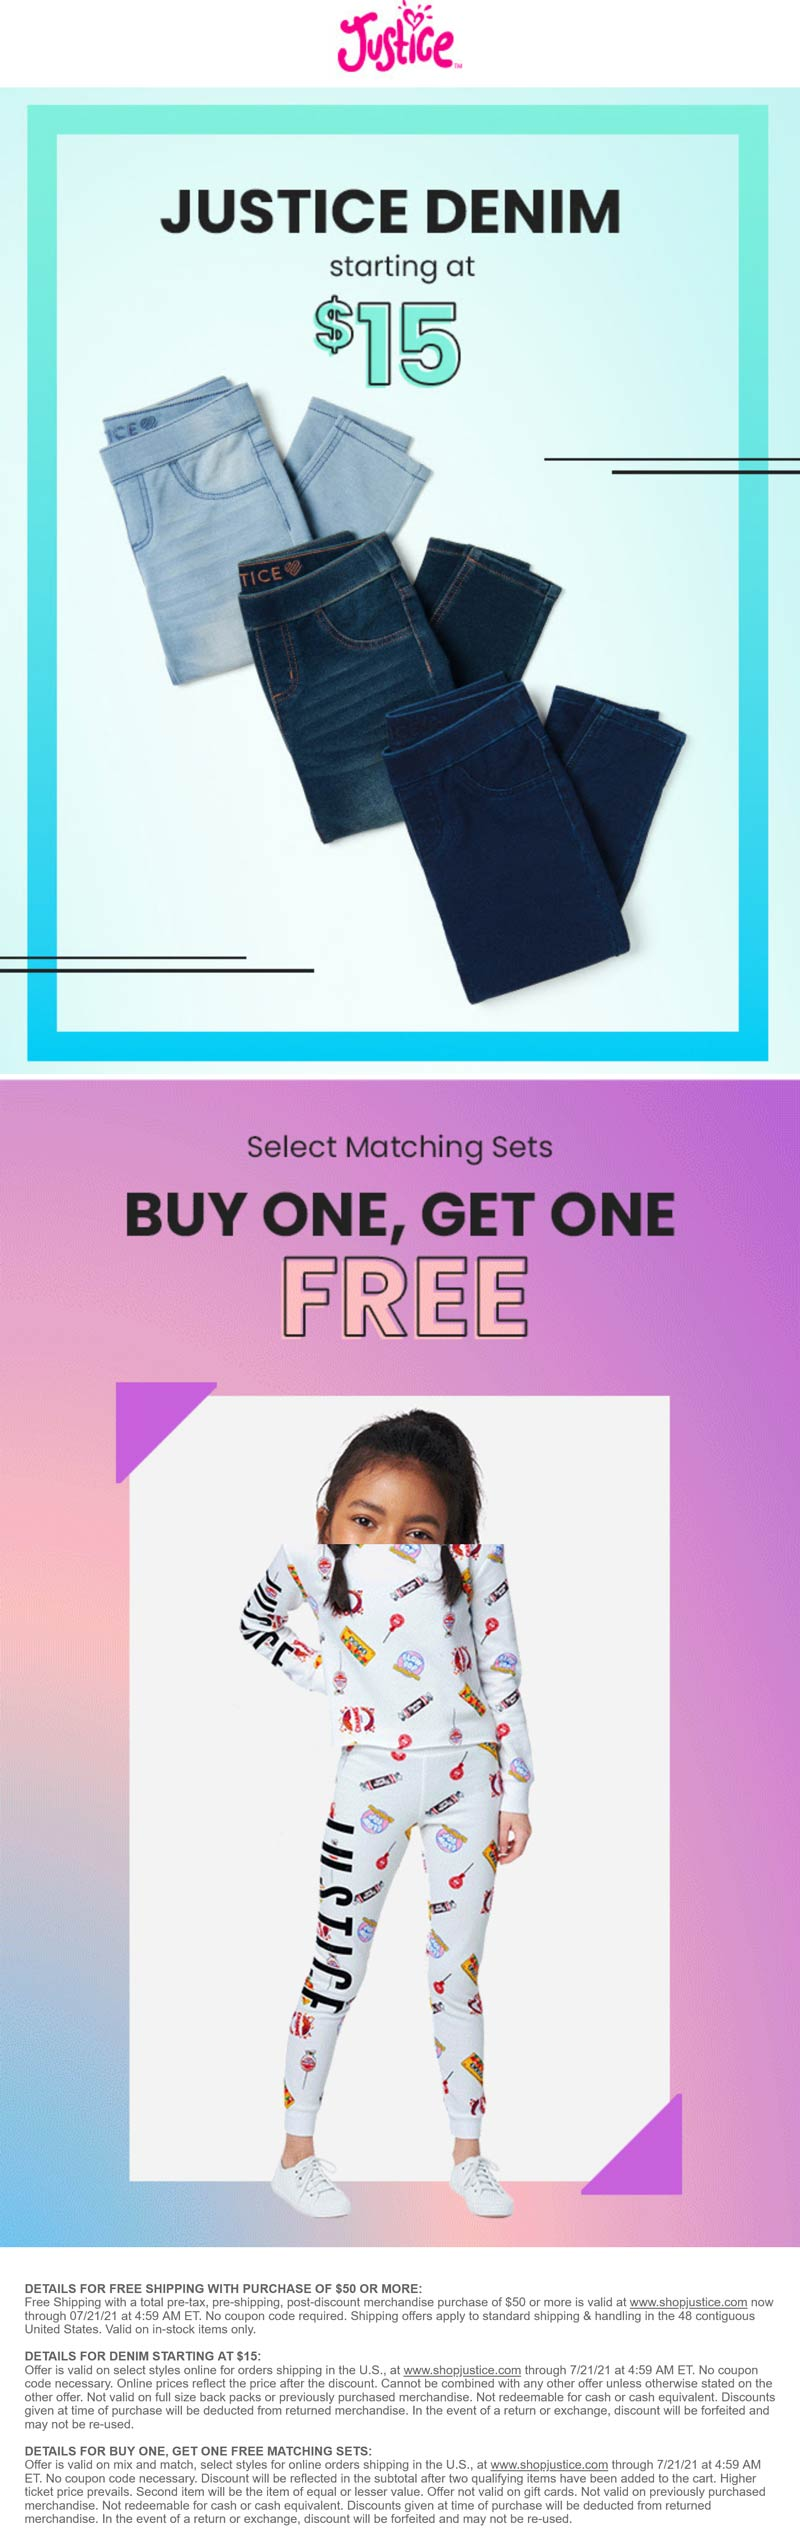 Justice stores Coupon  Second matching set free & $15 denim at Justice #justice